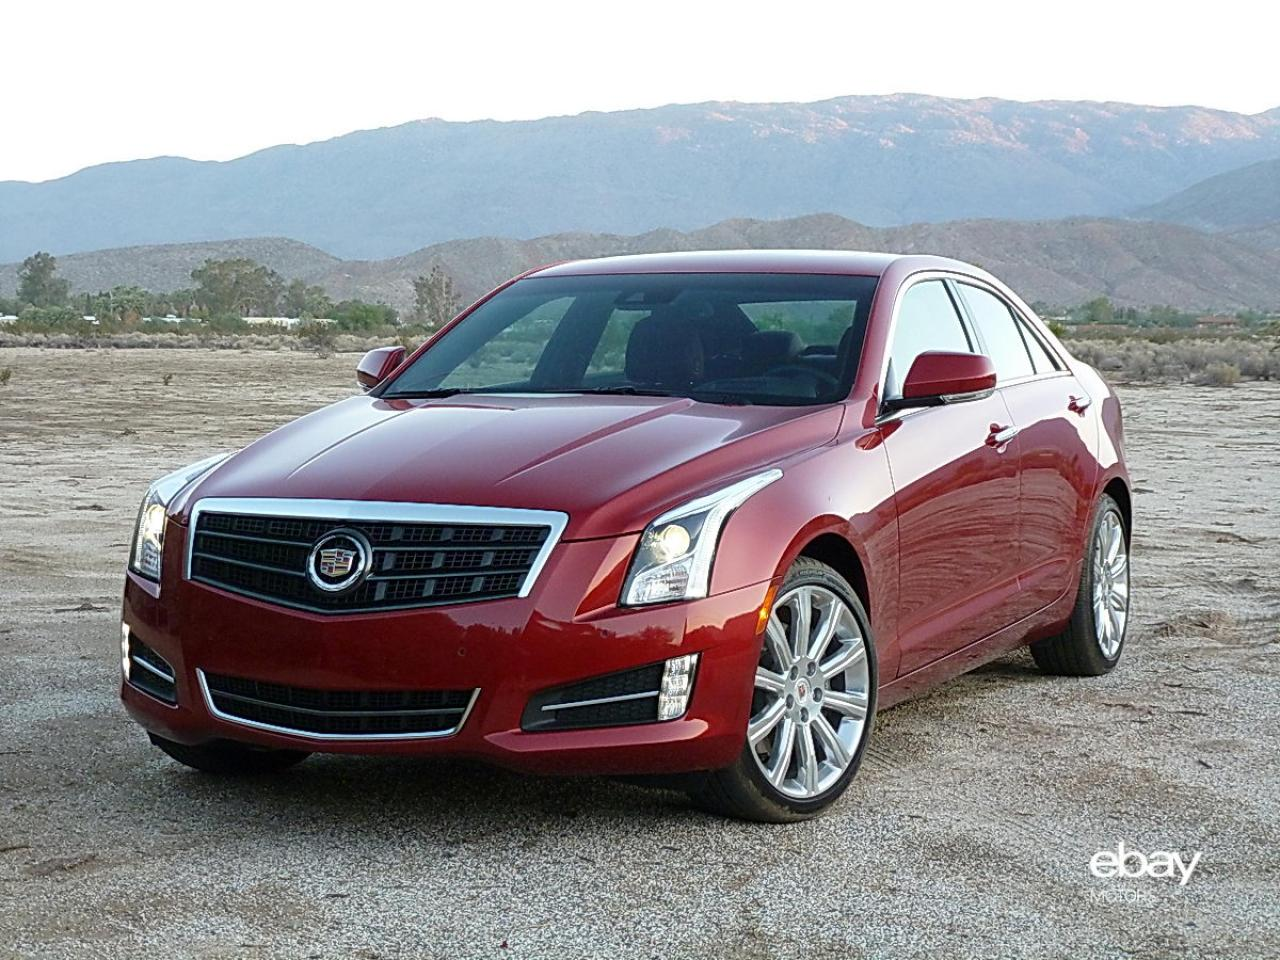 2014 Cadillac Ats Information And Photos Zombiedrive